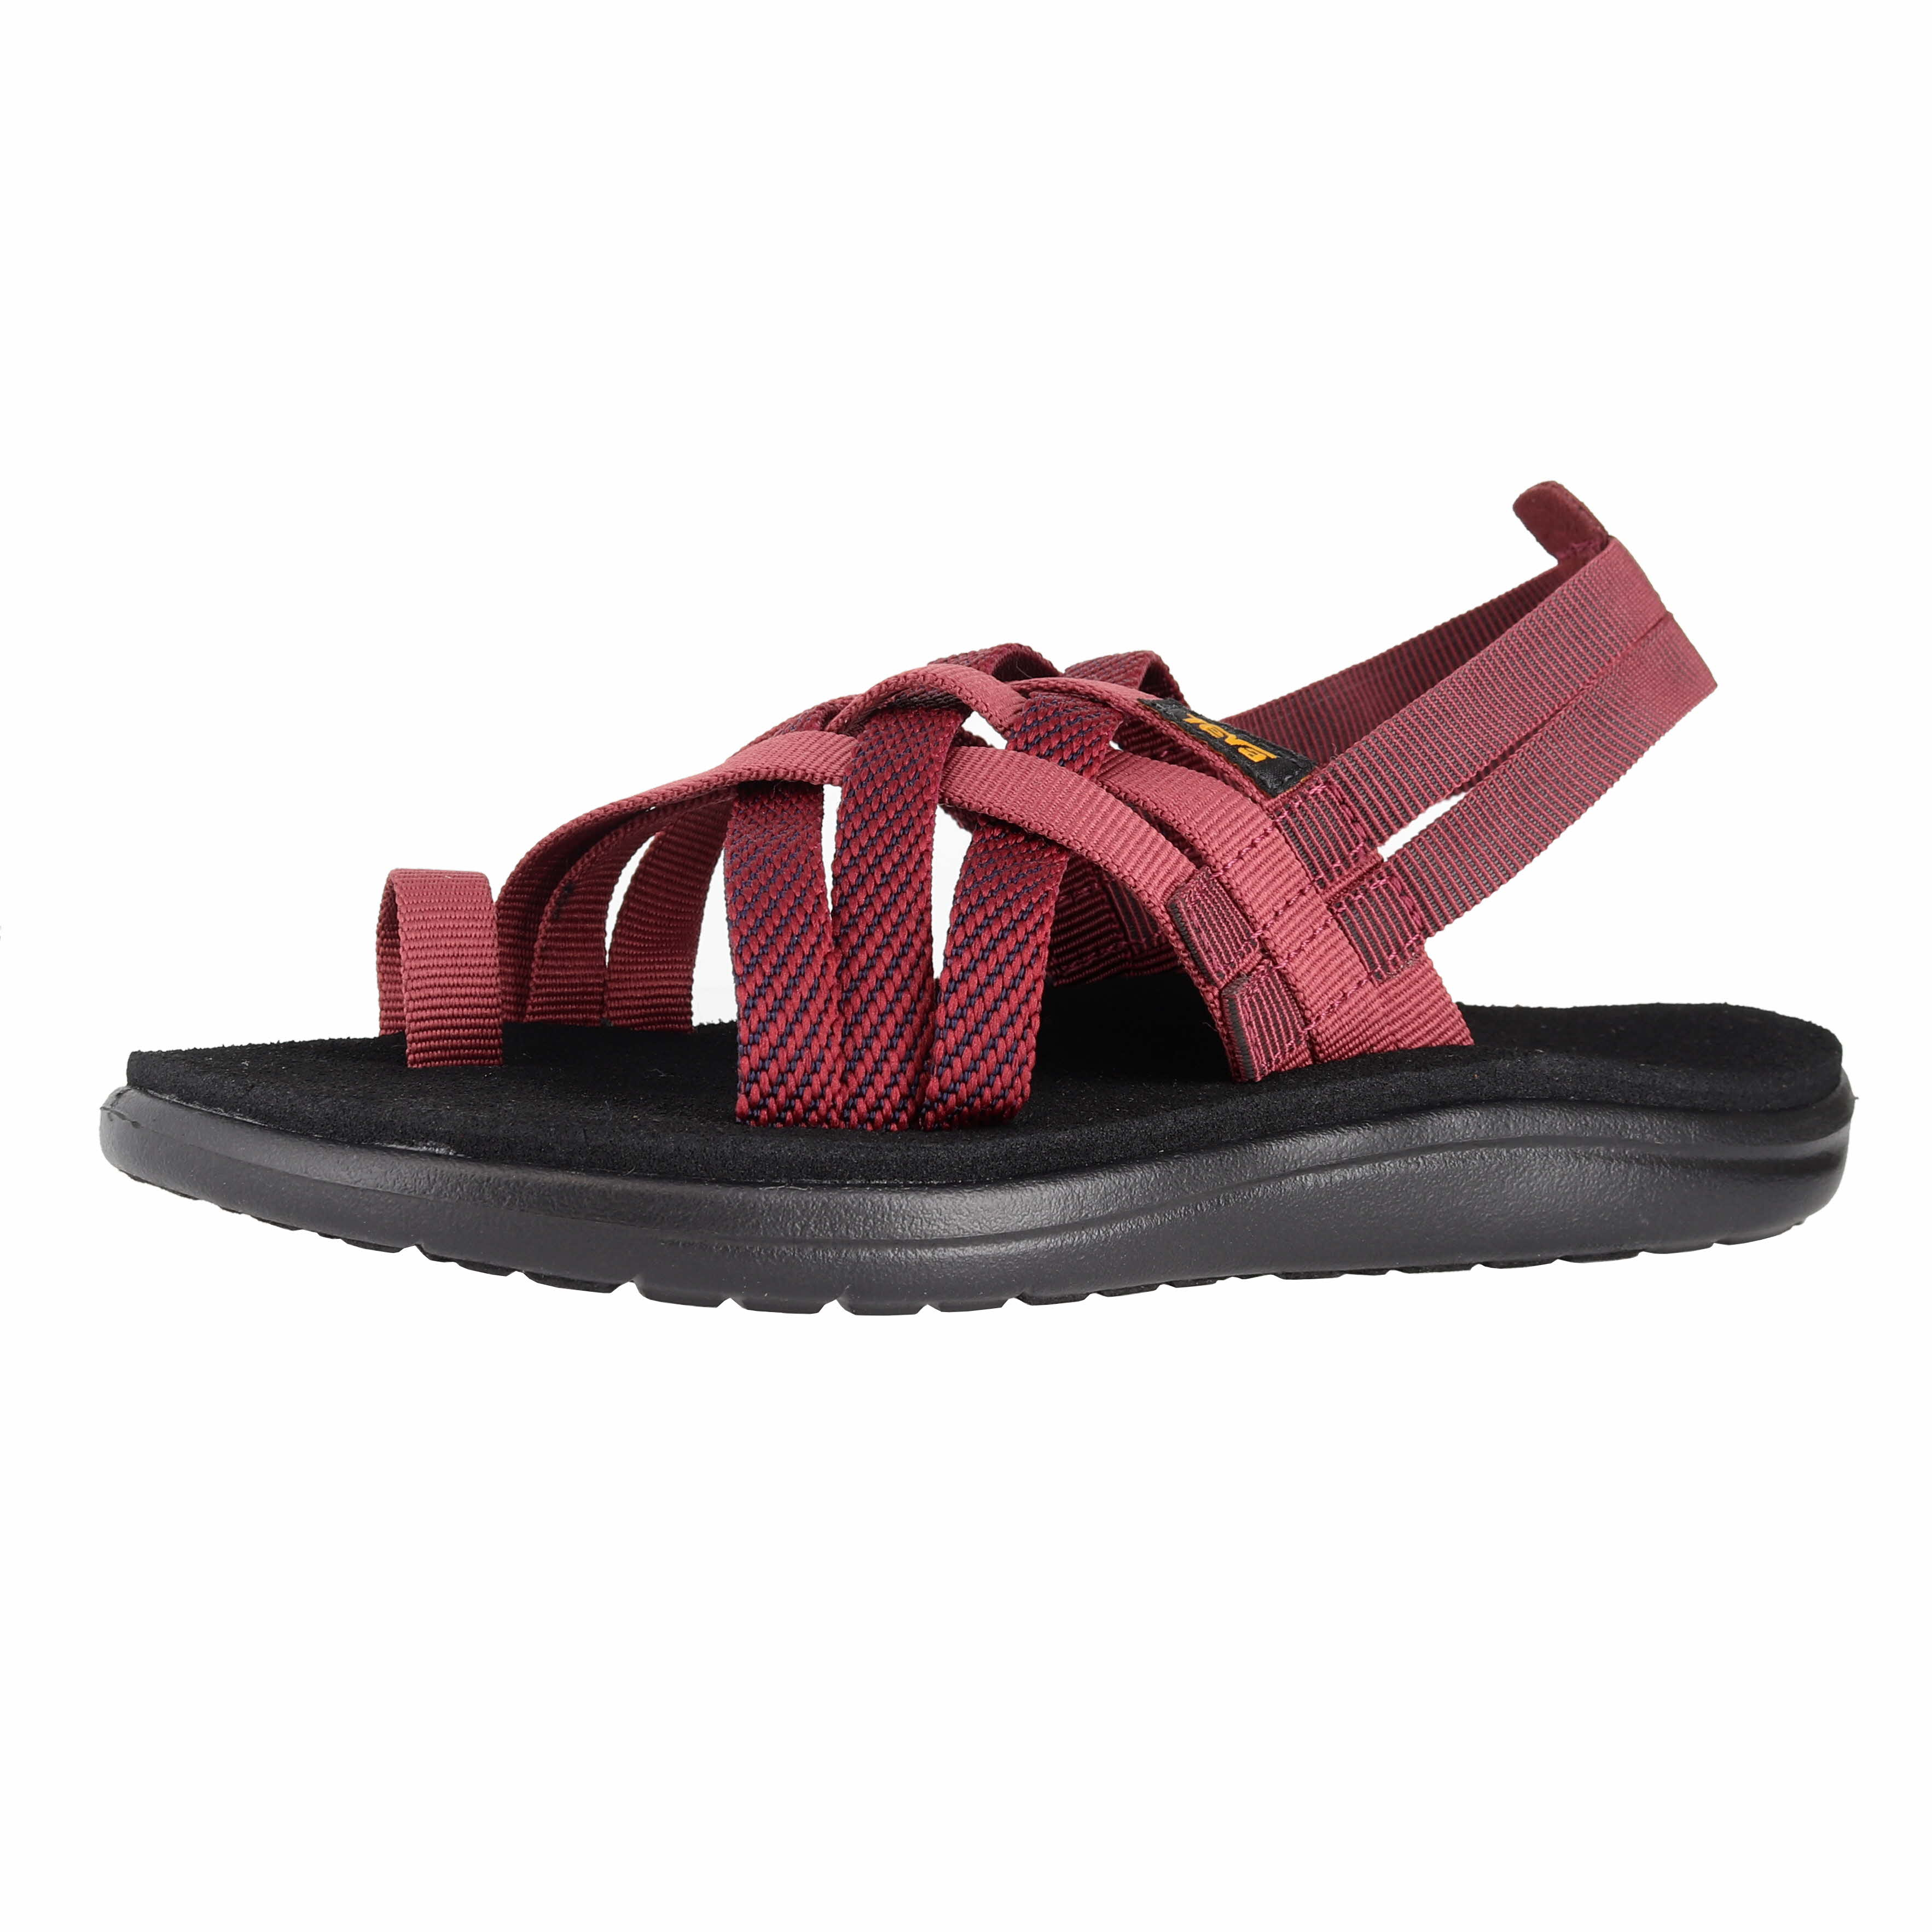 d33a3ee7393 Details about Teva Voya Strappy Hera Port Womens Strappy Sandal Size 6M